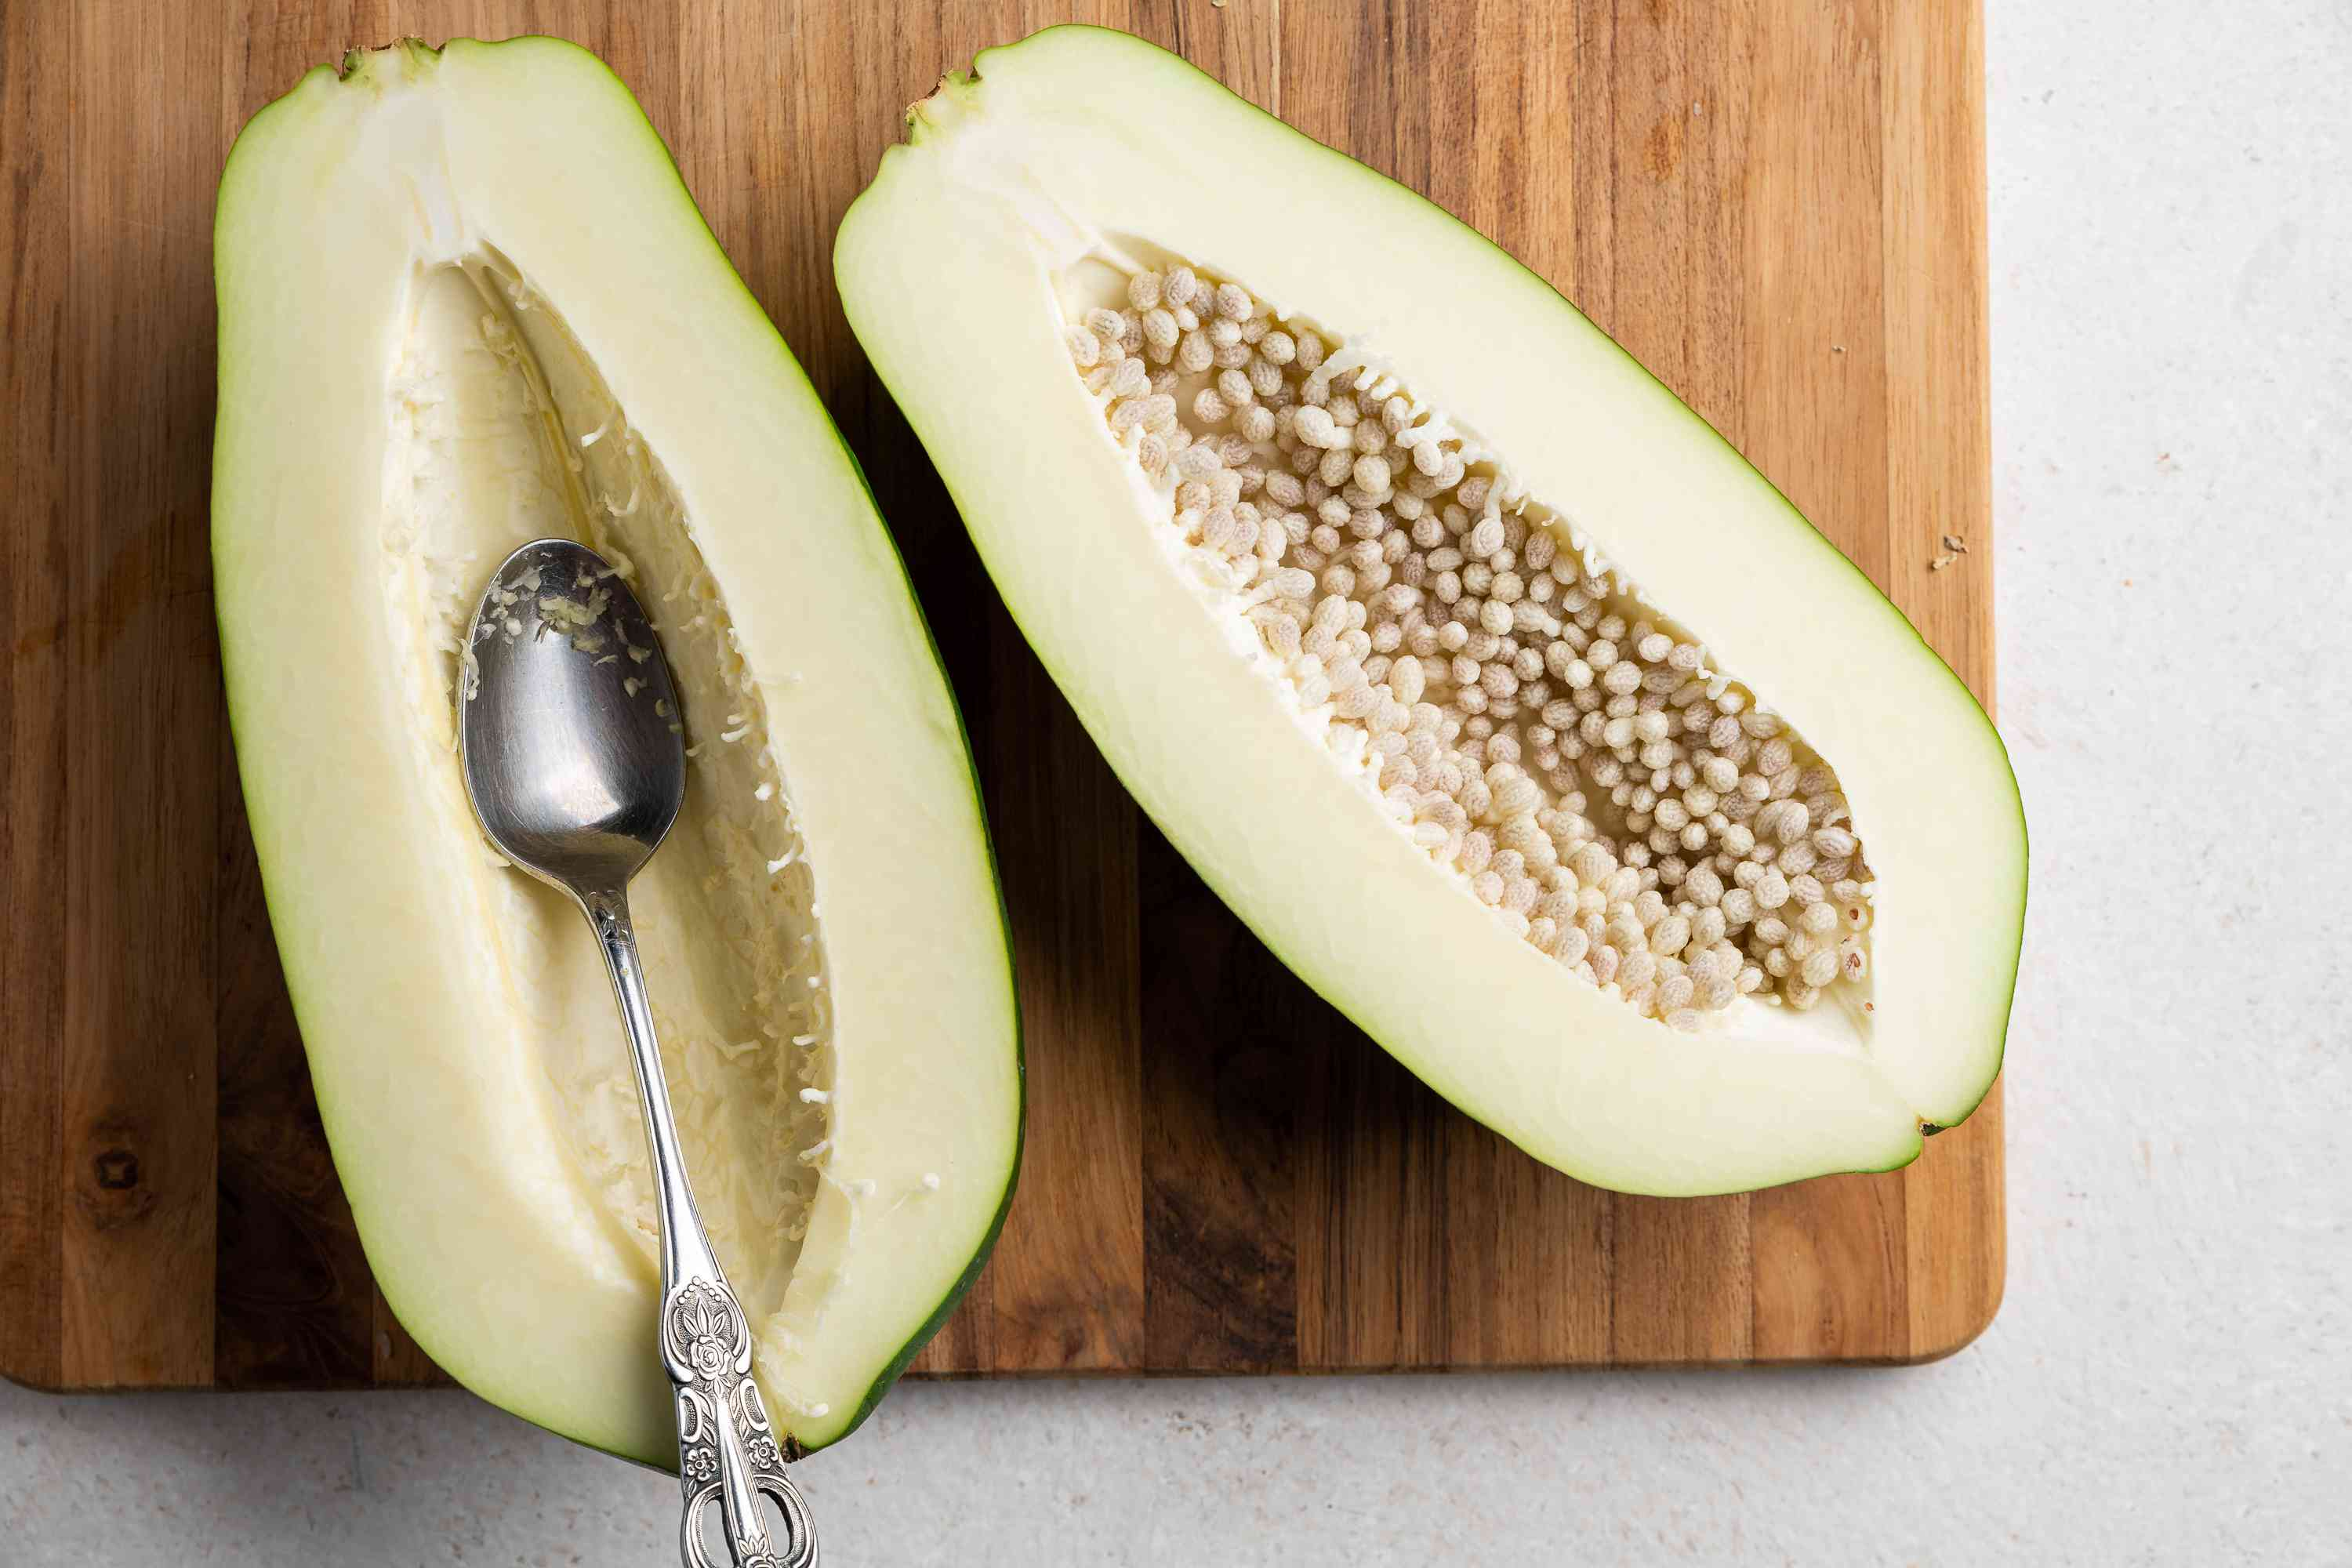 Split the green papaya vertically and scoop out the seeds with a spoon